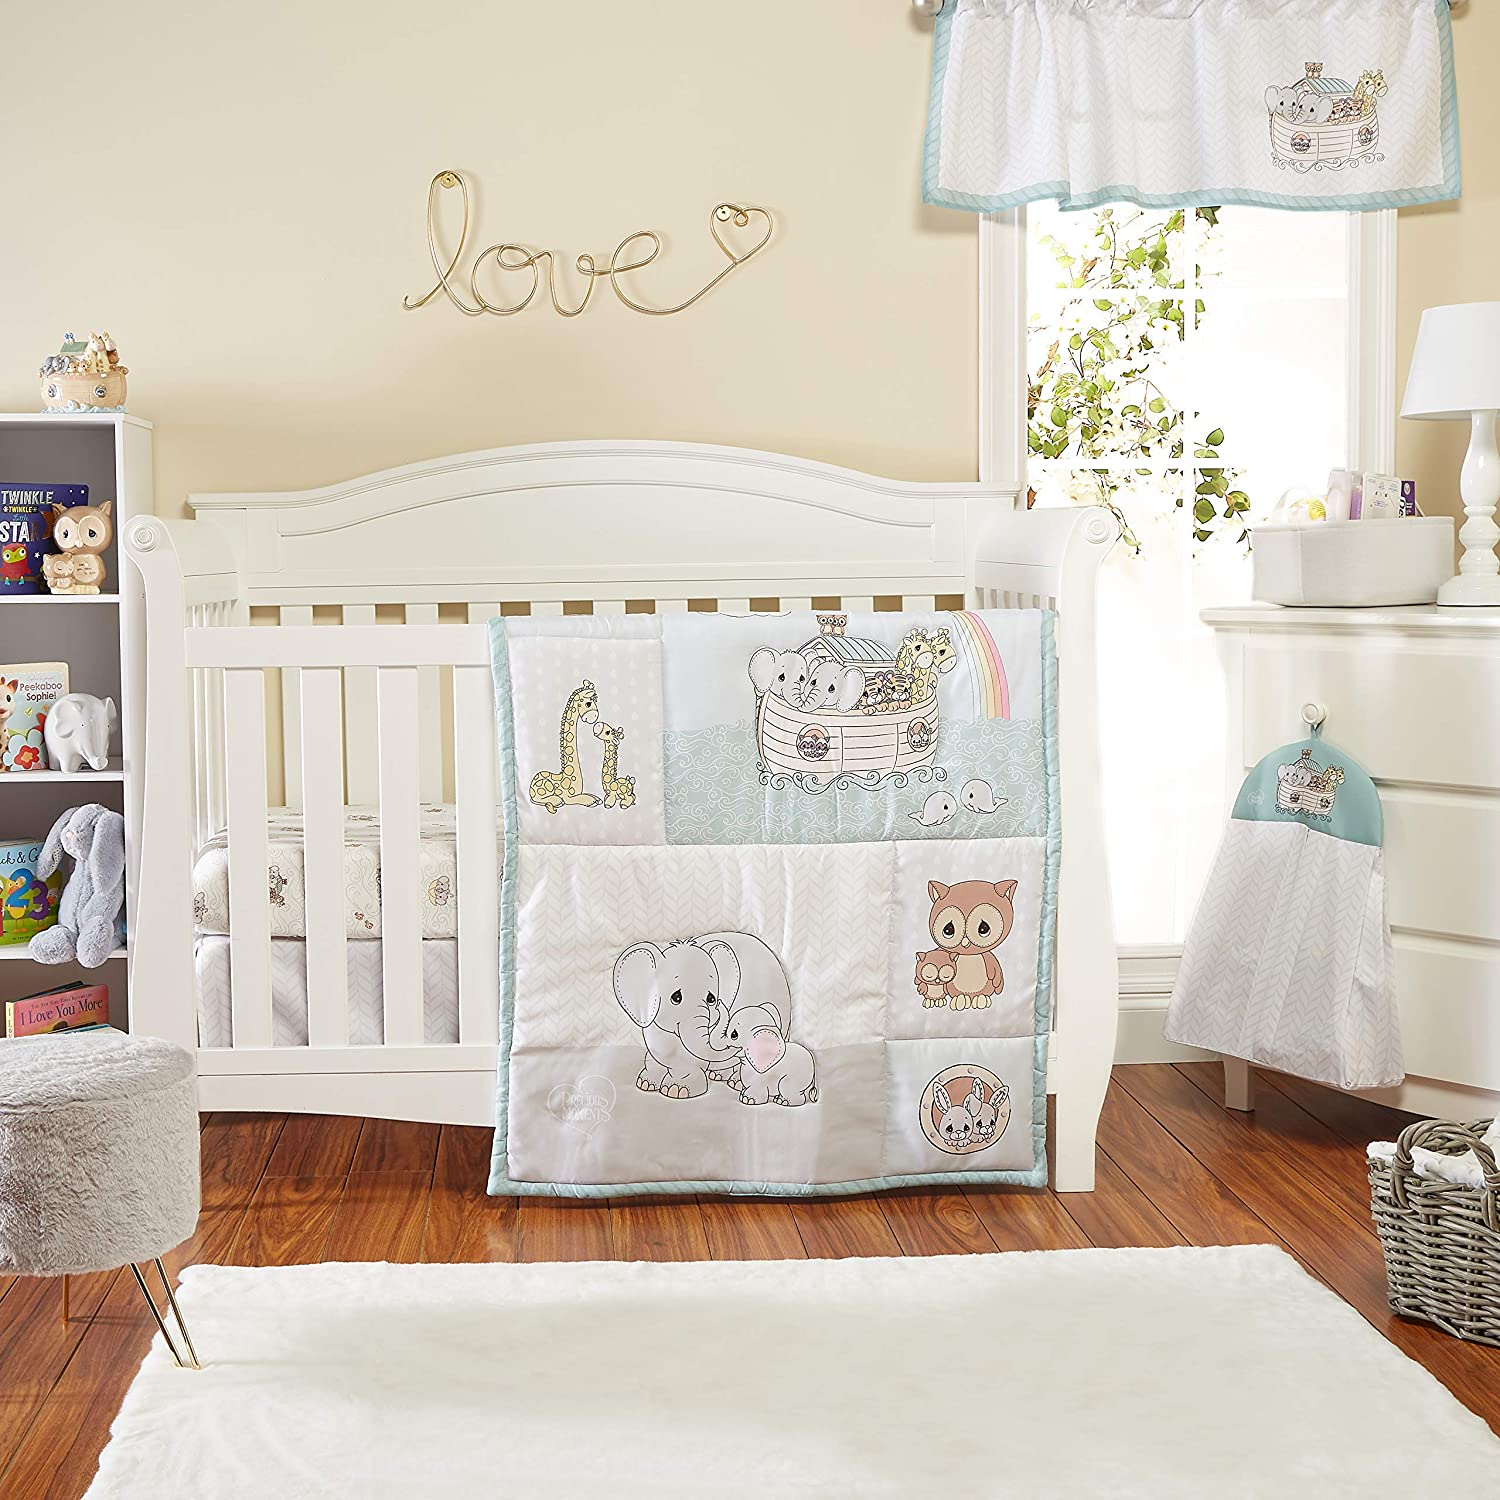 Precious Moments Noah's Ark 4 Pc Crib Bedding for Boys by Everyday Kids; Nursery Set Includes Baby Bed Quilt, Fitted Sheet, Dust Ruffle and Diaper Stacker with Sweet Images of Elephants and Giraffes …